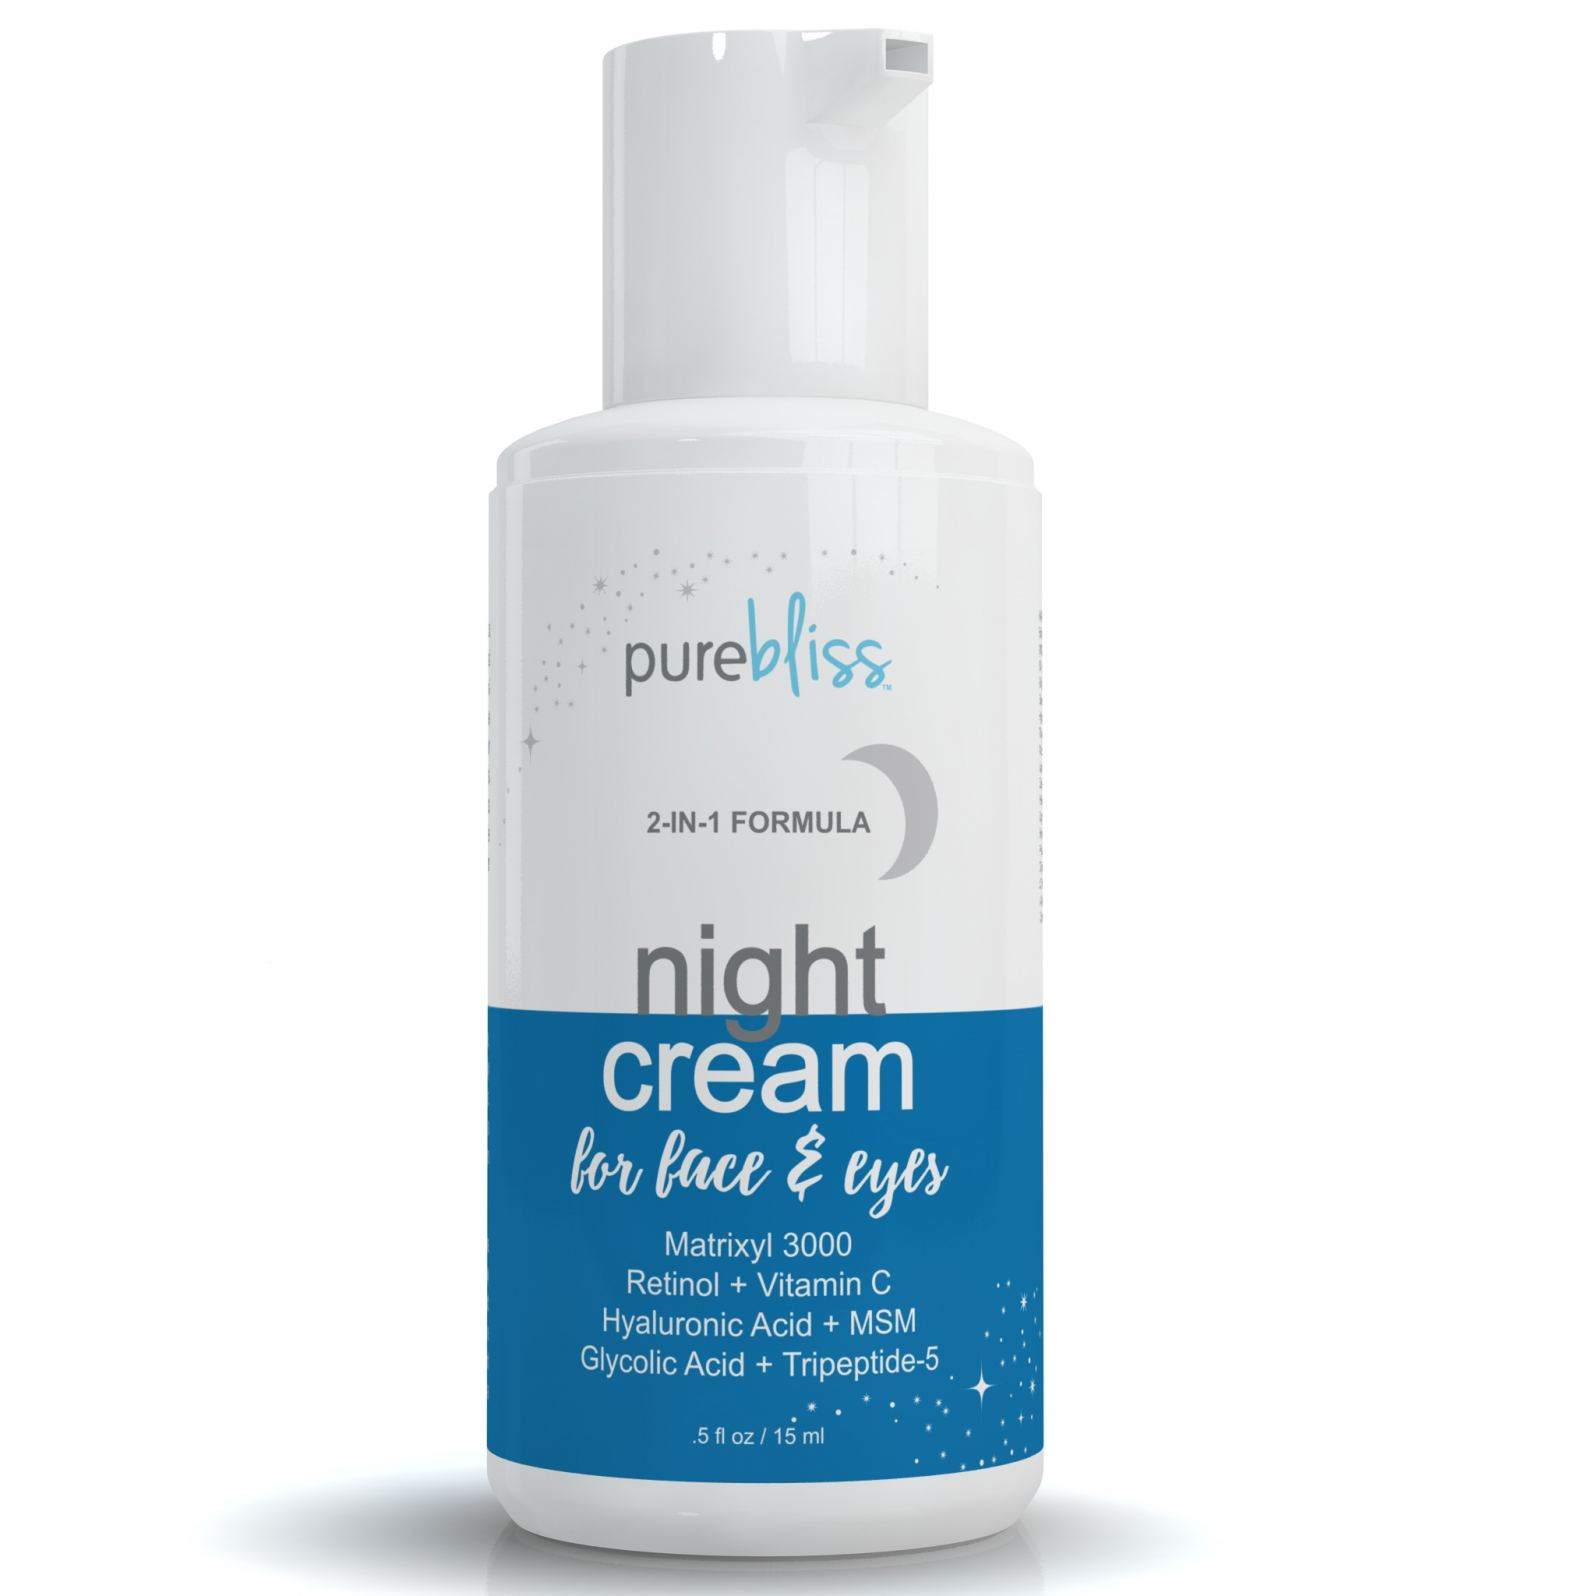 Night Cream Moisturizer for Face and Eyes